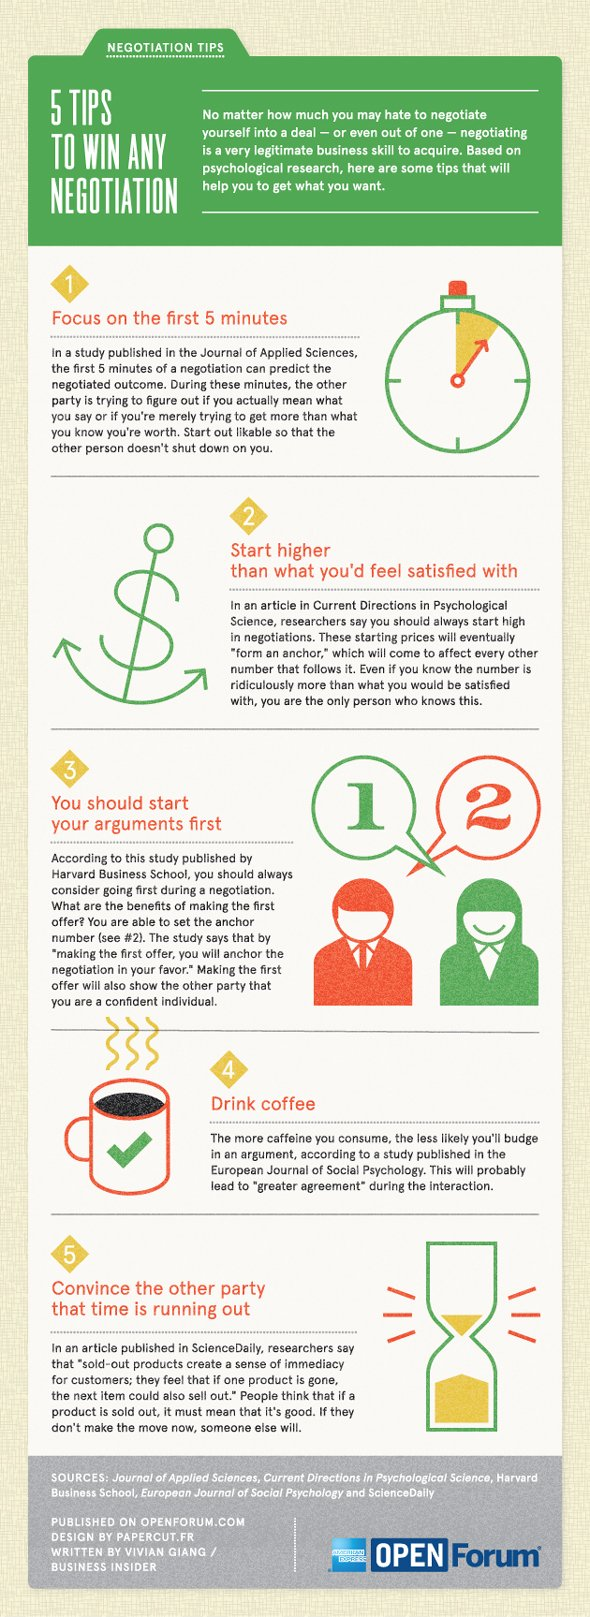 5 Basic Tips to Win a Negotiation